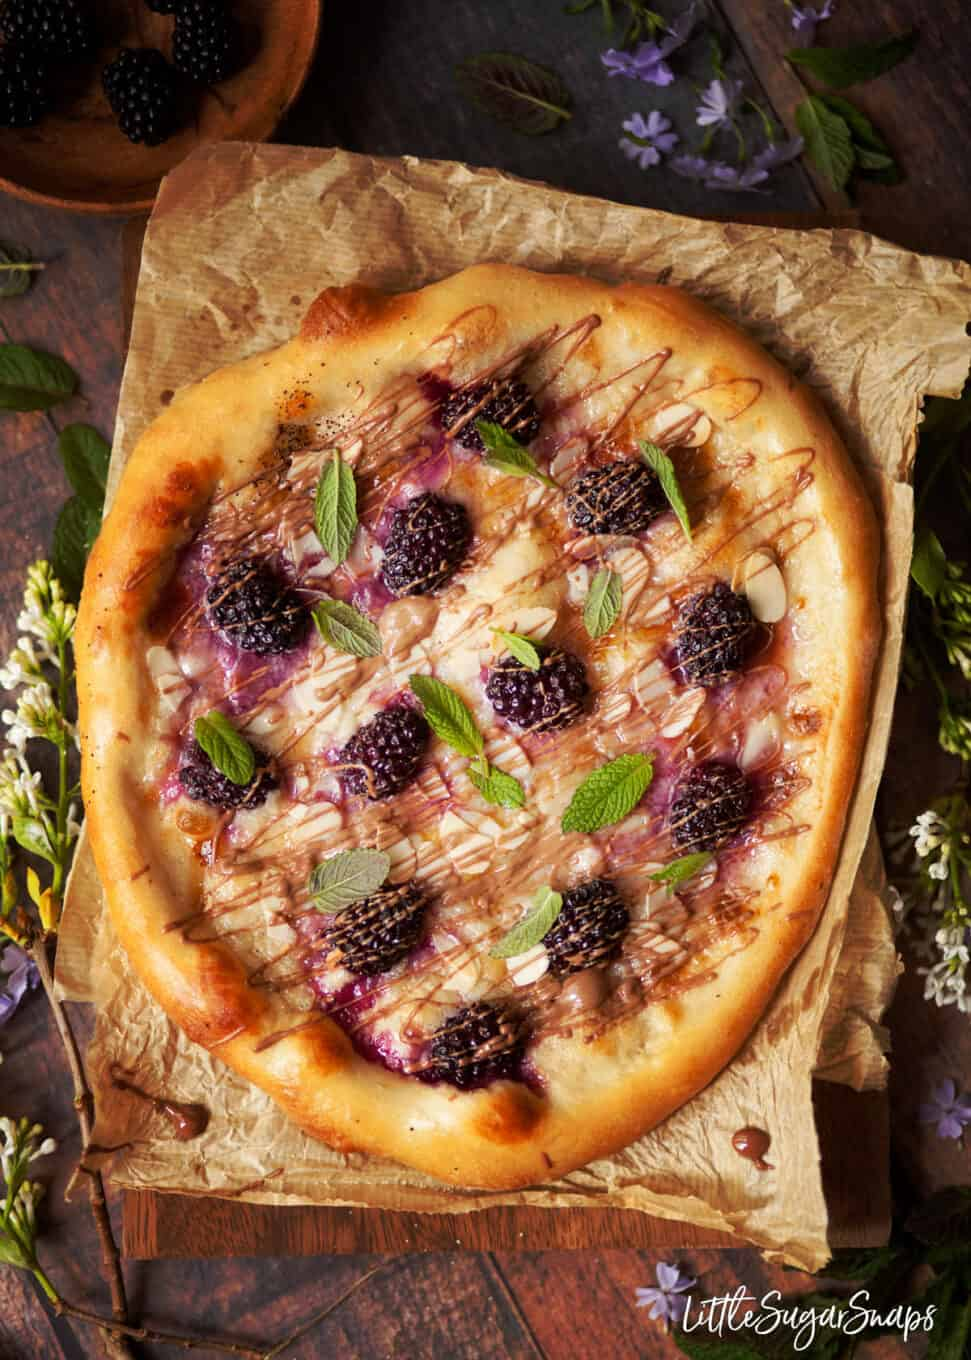 Sweet pizza topped with mascarpone, blackberries, milk chocolate drizzle, almonds and mint leaves.